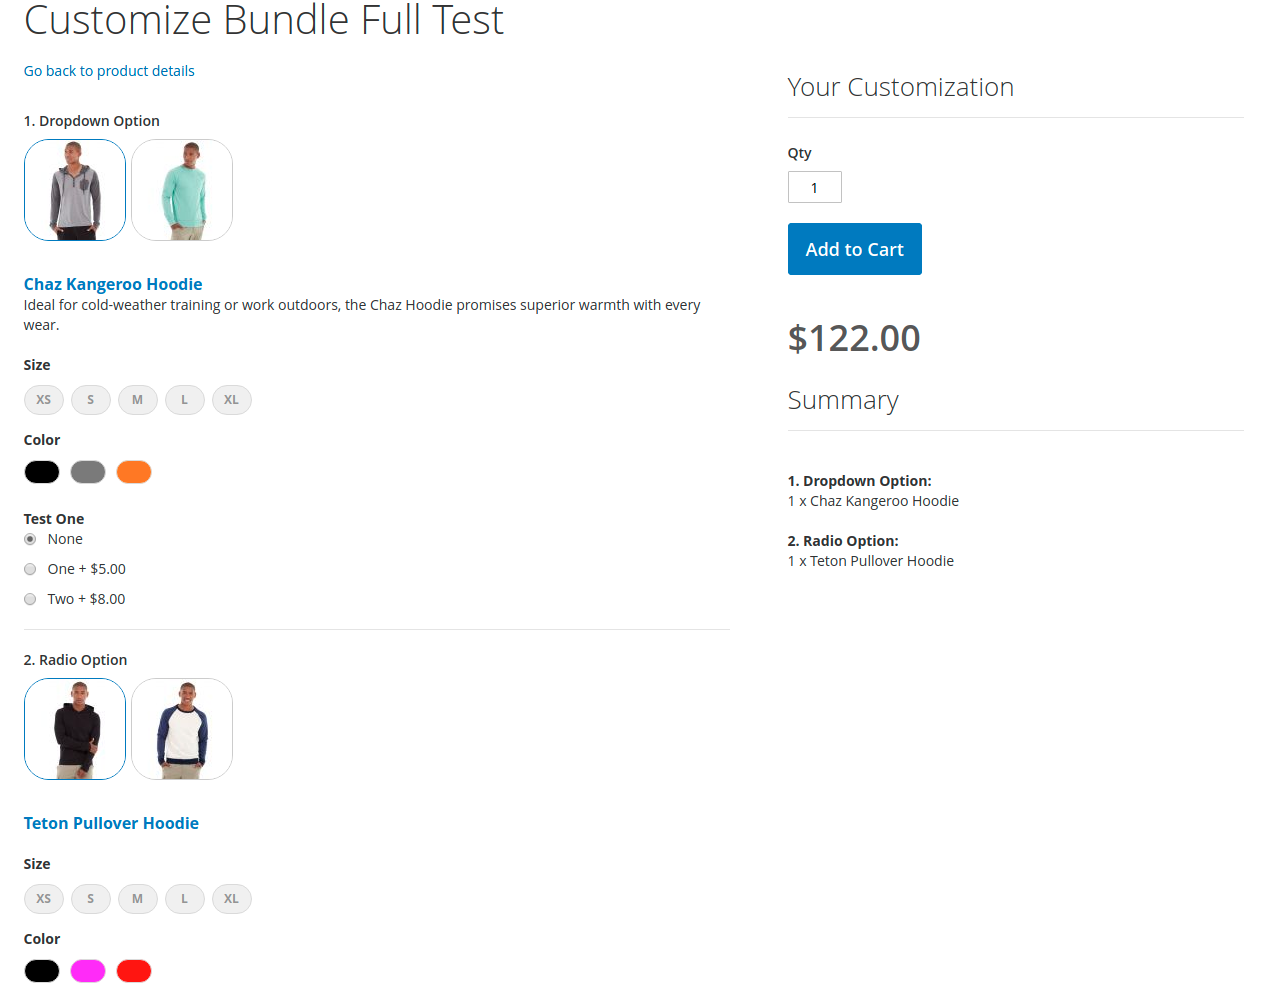 Configurable Bundle in the frontend